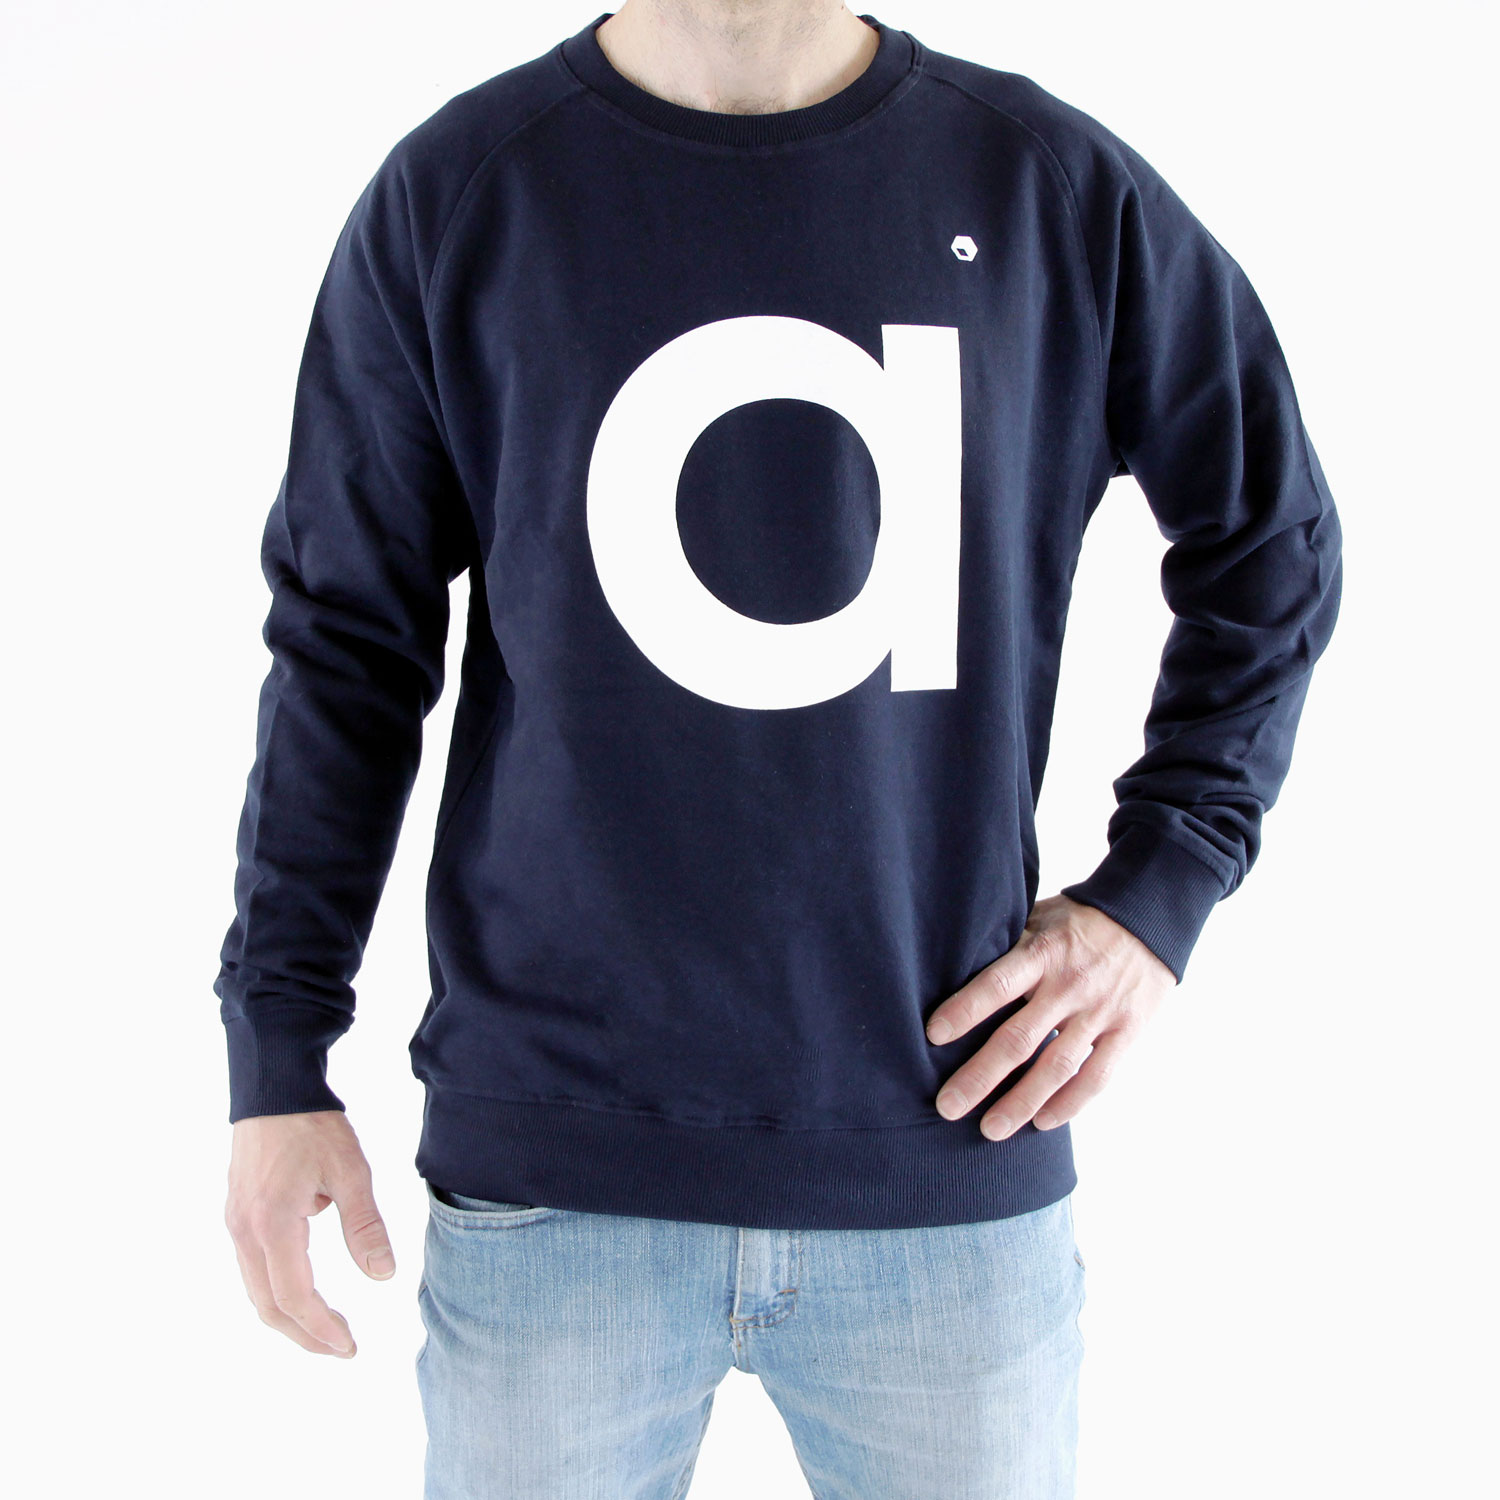 Flathold-apparel-sweat-a-navy